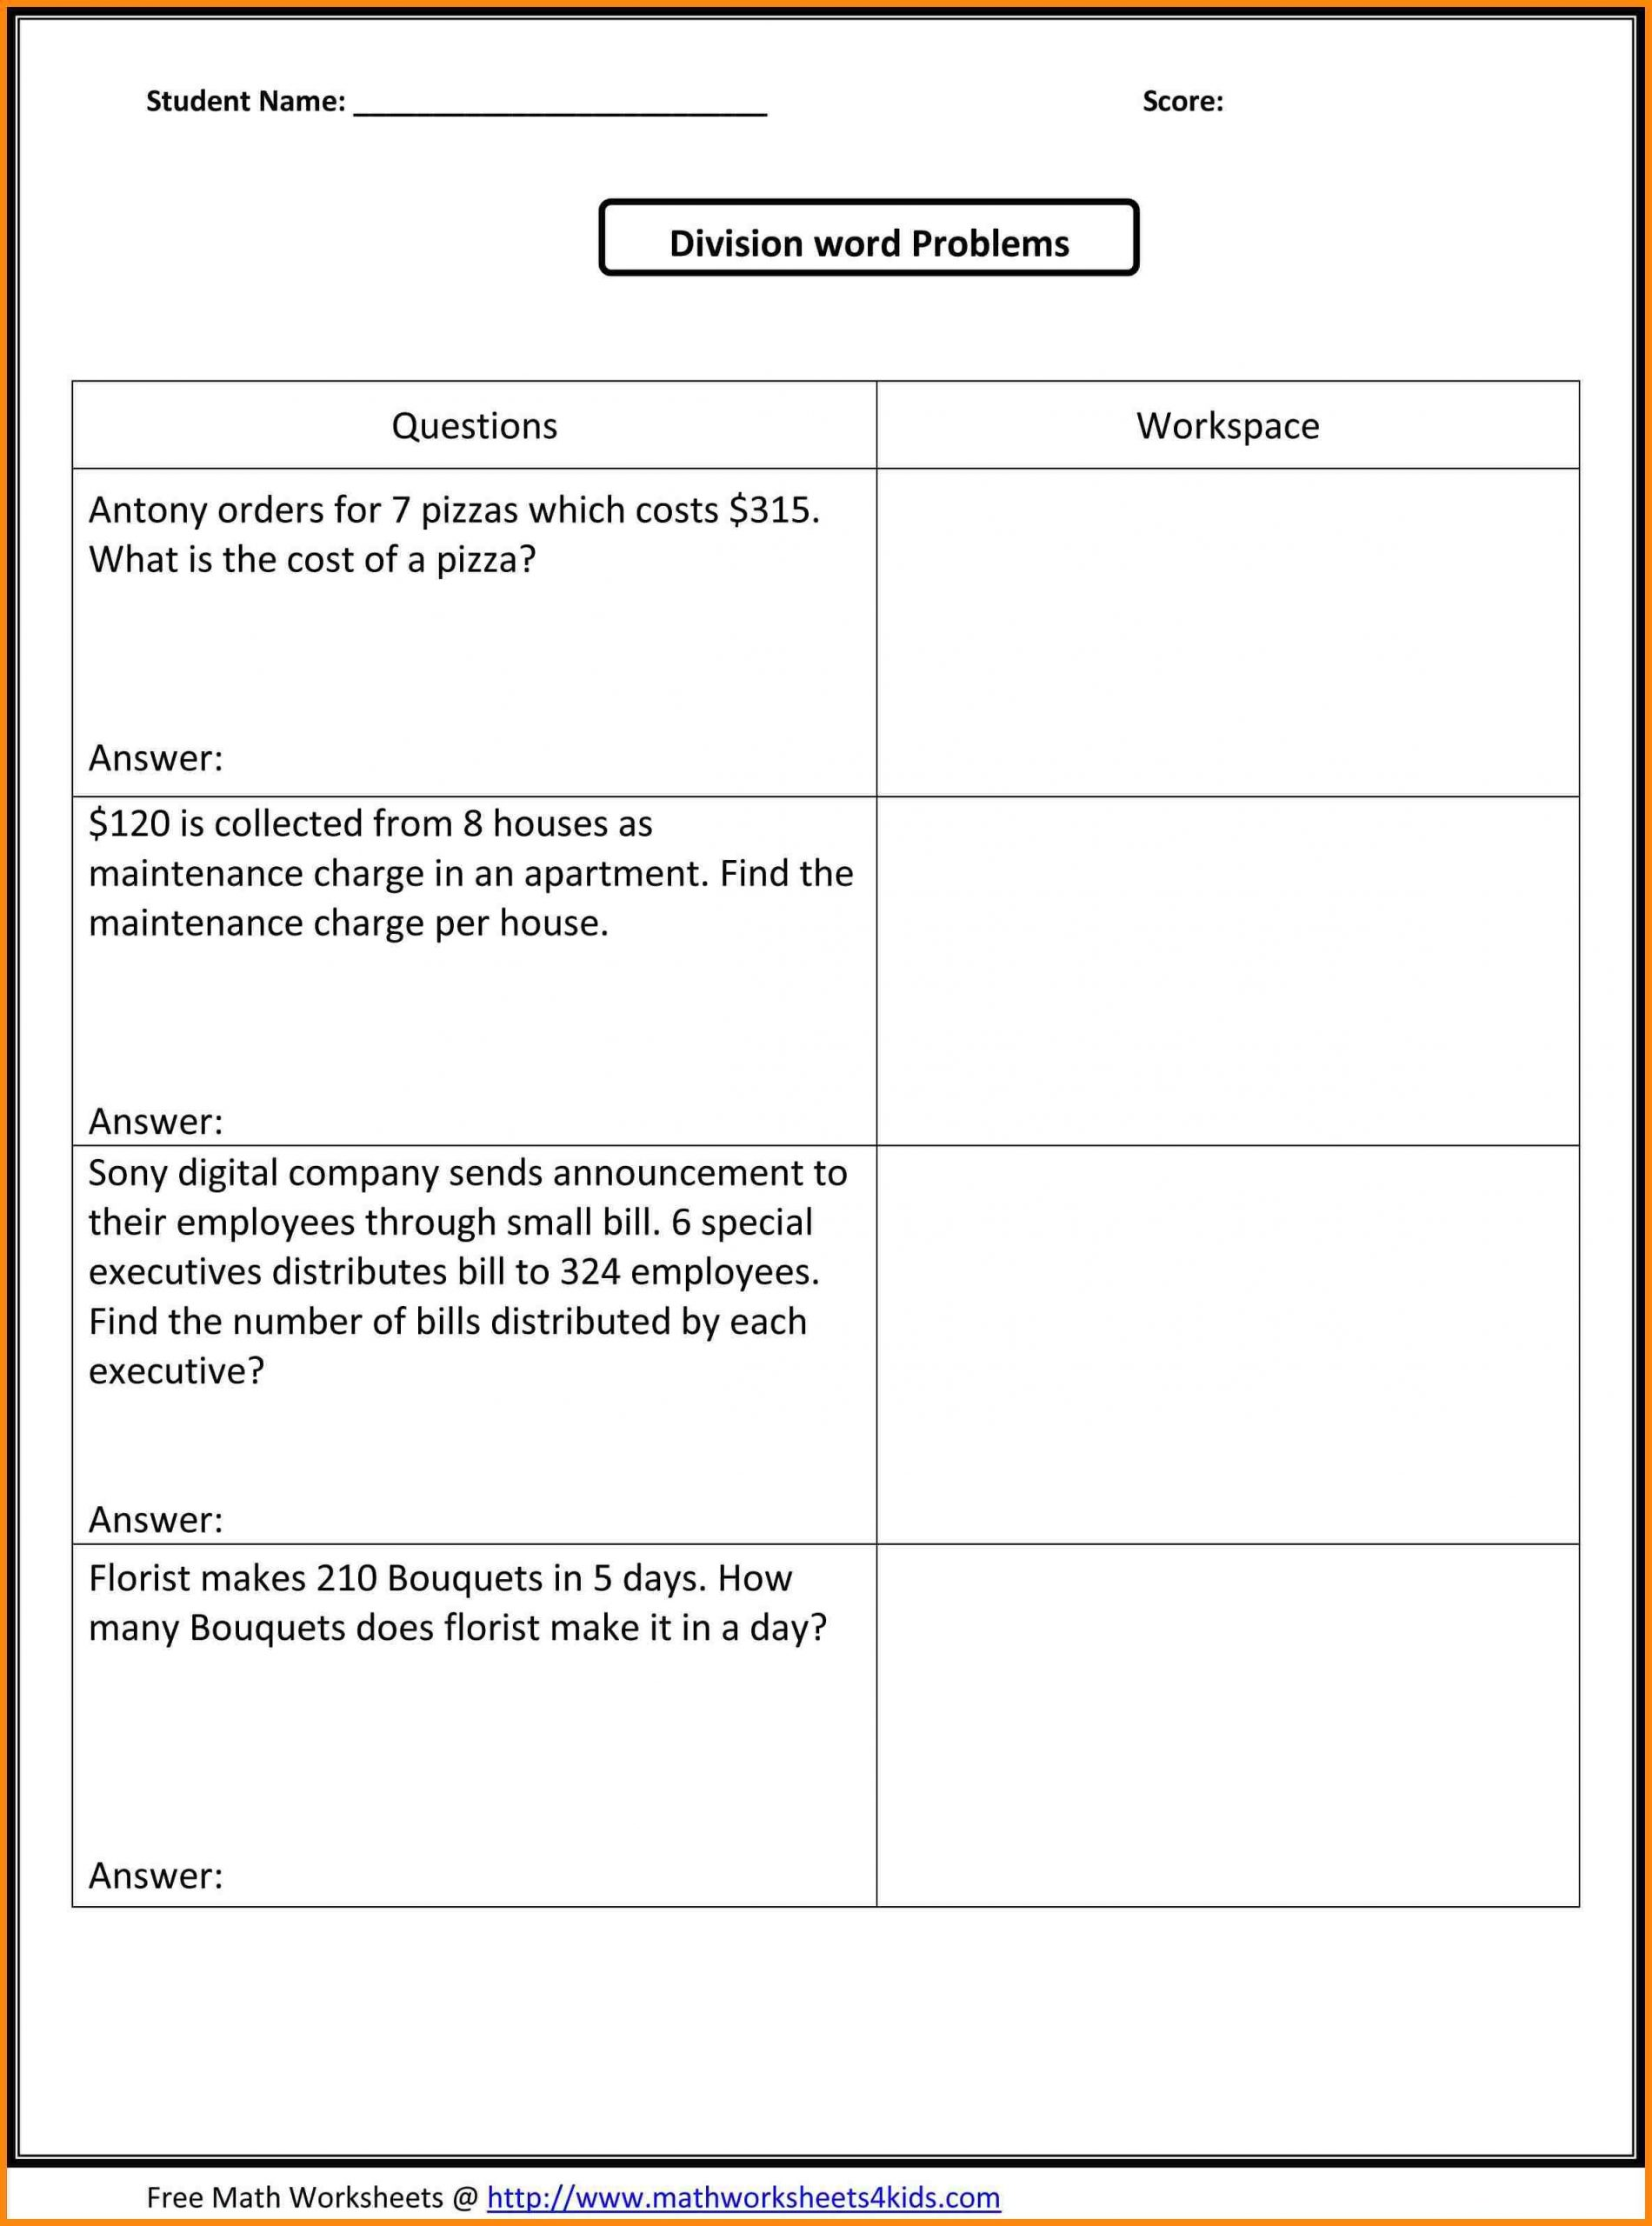 Biomes Worksheet 5th Grade 10 5th Grade Math Word Problems Bunch Ideas 6th Grade